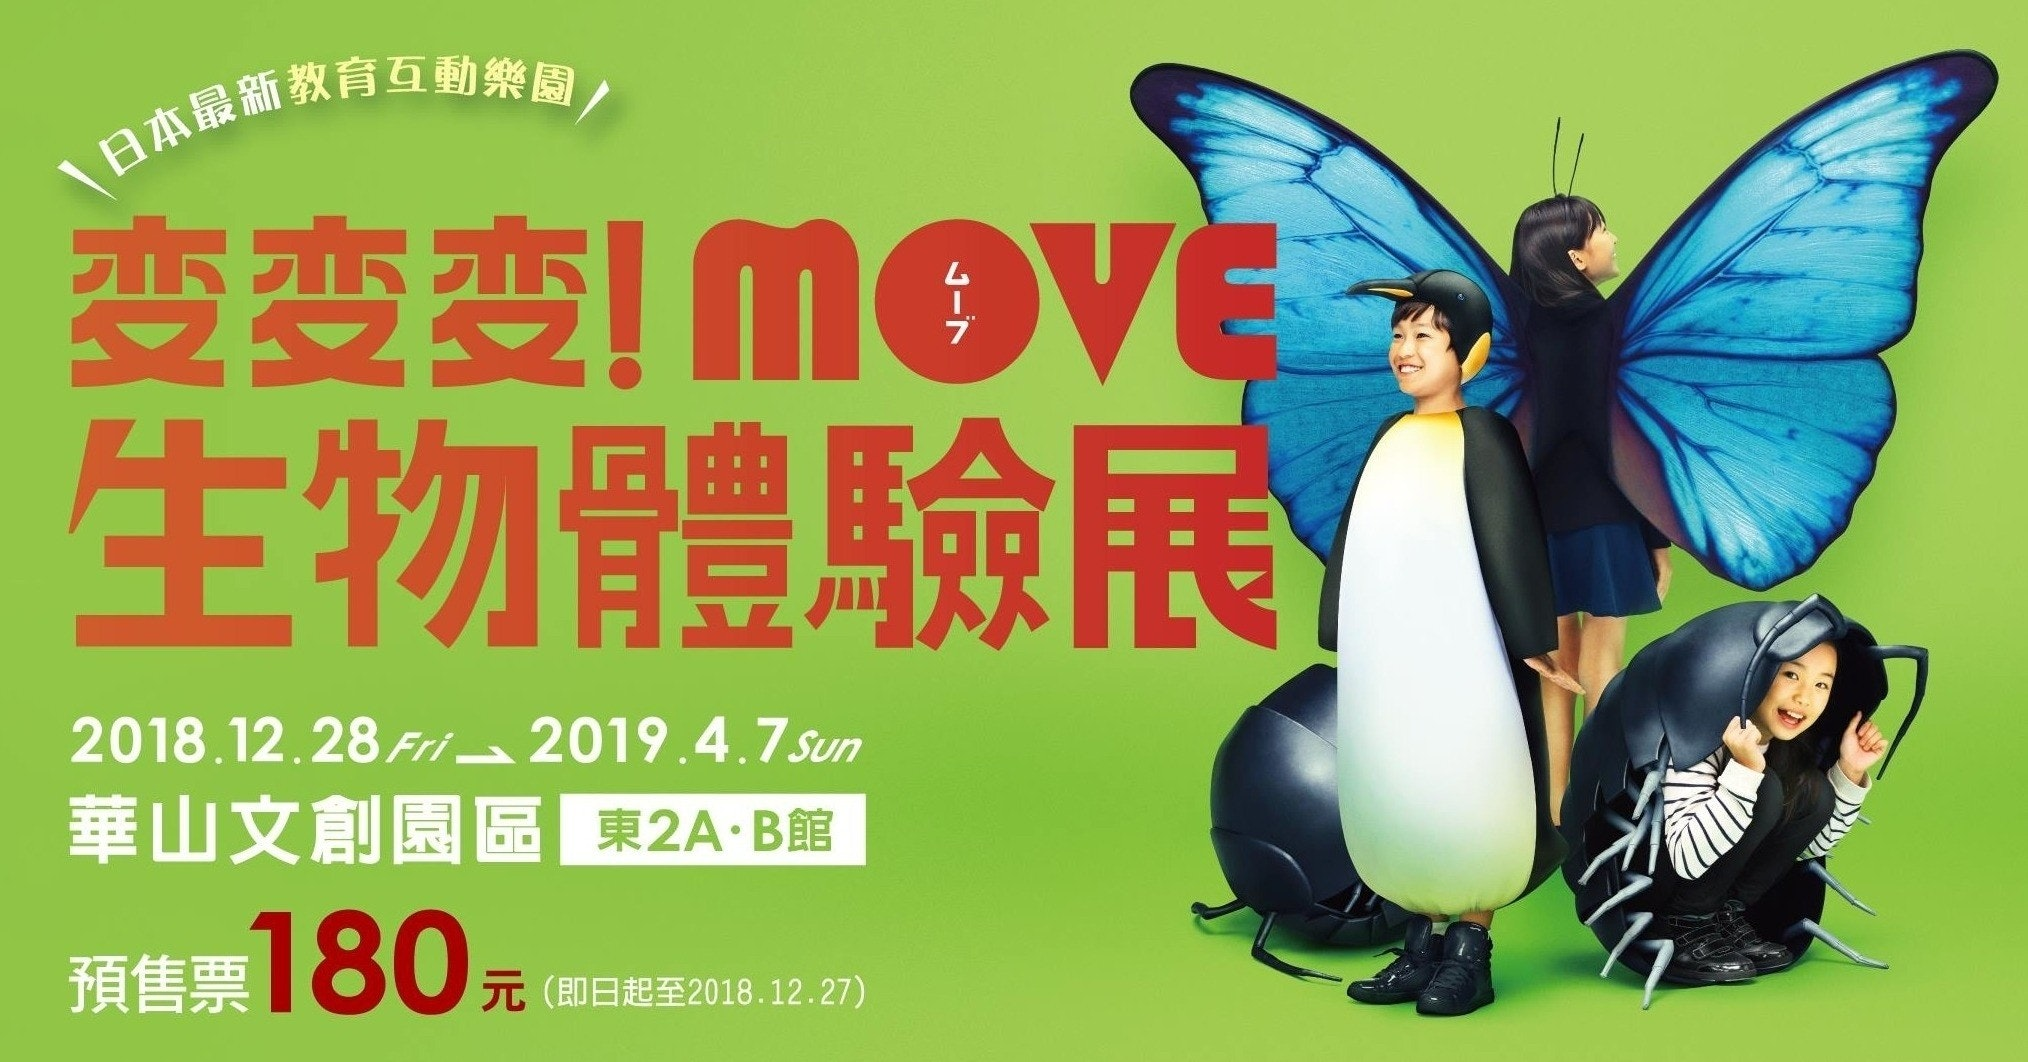 講談社の動く図鑑 MOVE, , , Mythos Studios, , , , Dentsu Inc., NHK Enterprises, Inc., , Field guide, butterfly, moths and butterflies, insect, advertising, invertebrate, pollinator, organism, graphics, font, graphic design